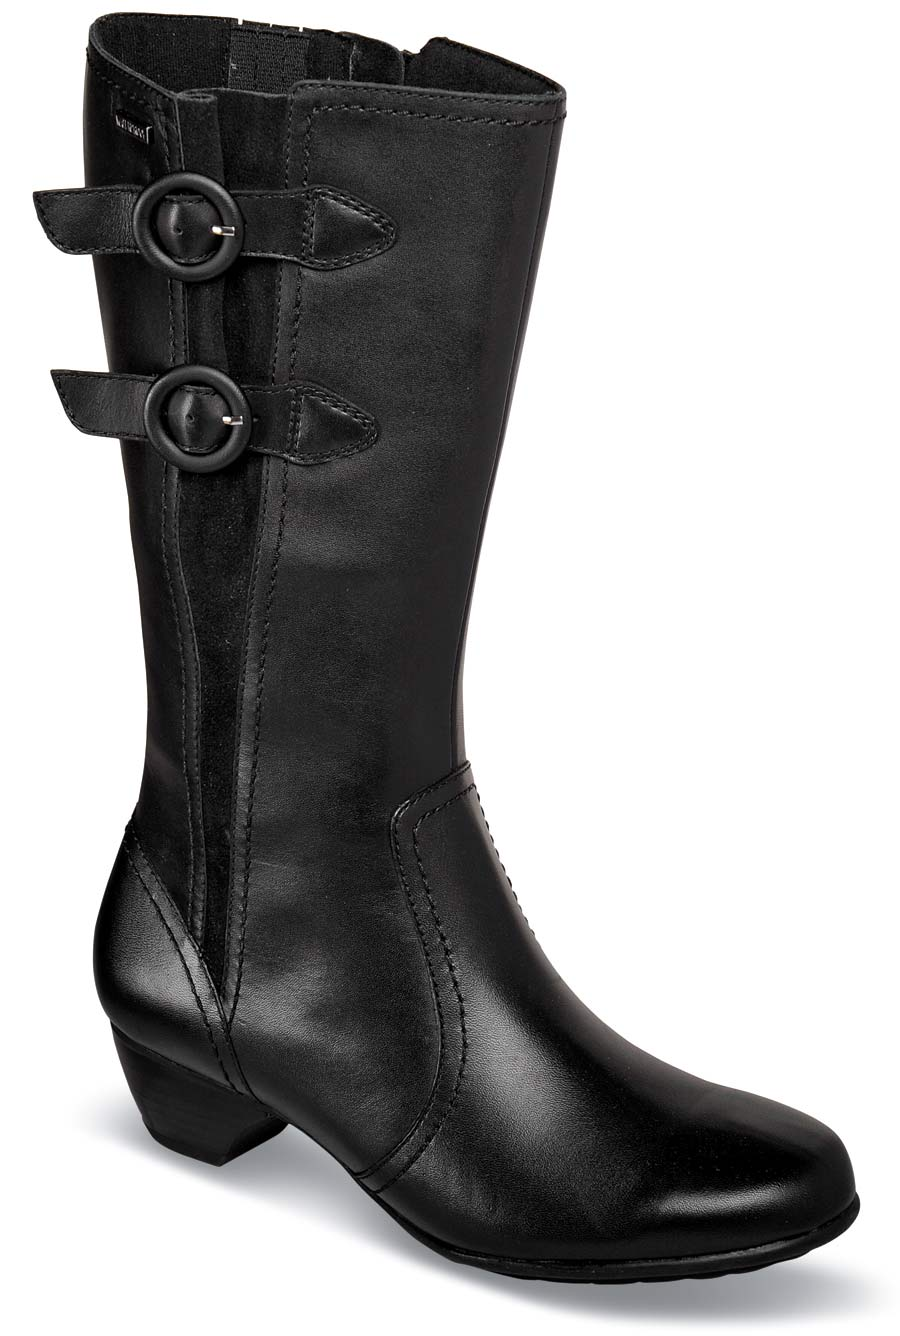 Pauline Black 12 Inch Boot Hitchcock Wide Shoes